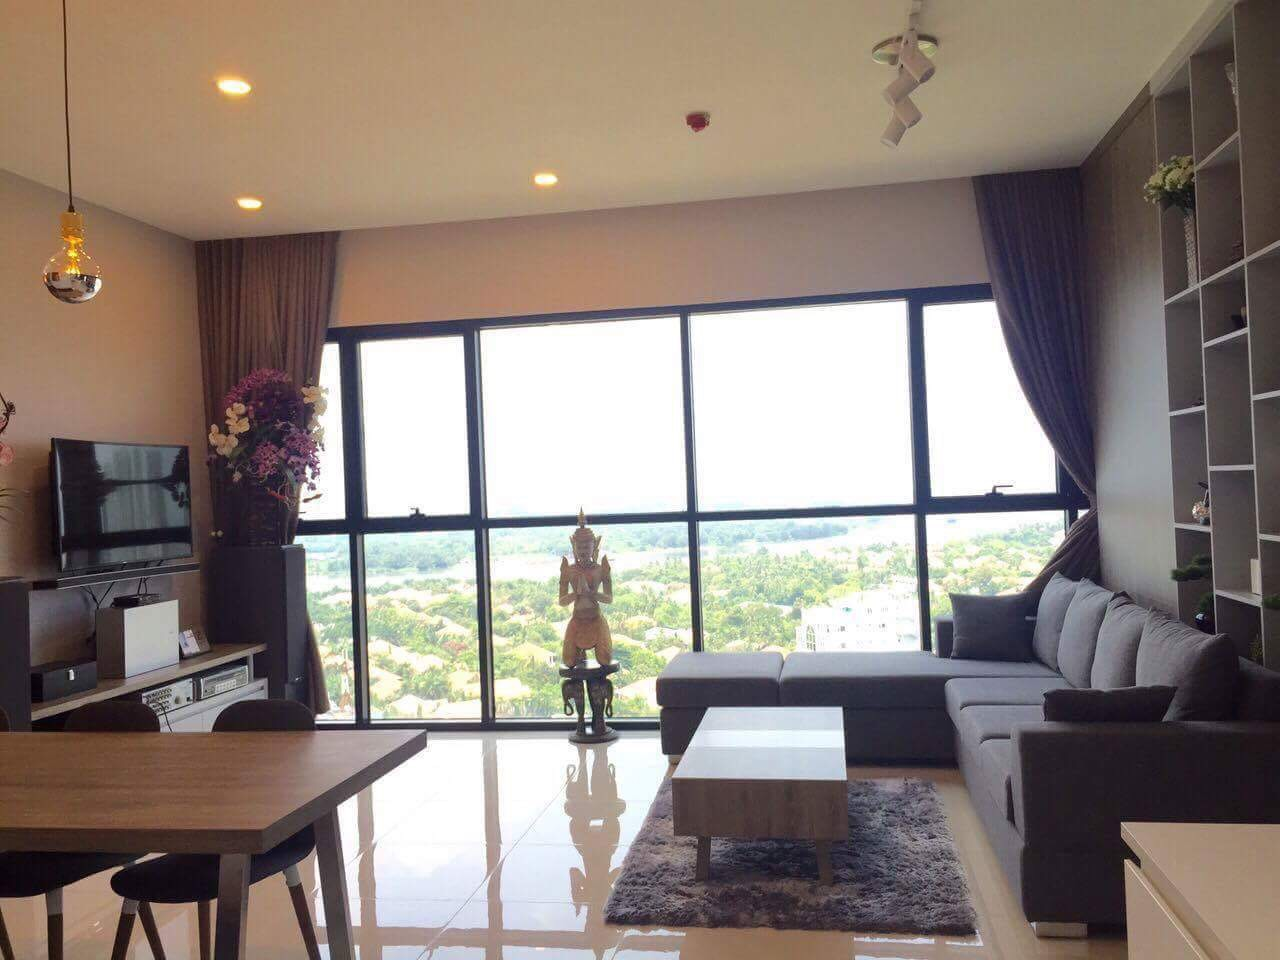 apartment for rent in district 2 hcmc the ascent apartment for rent in district 2 hcmc D217148 (11)